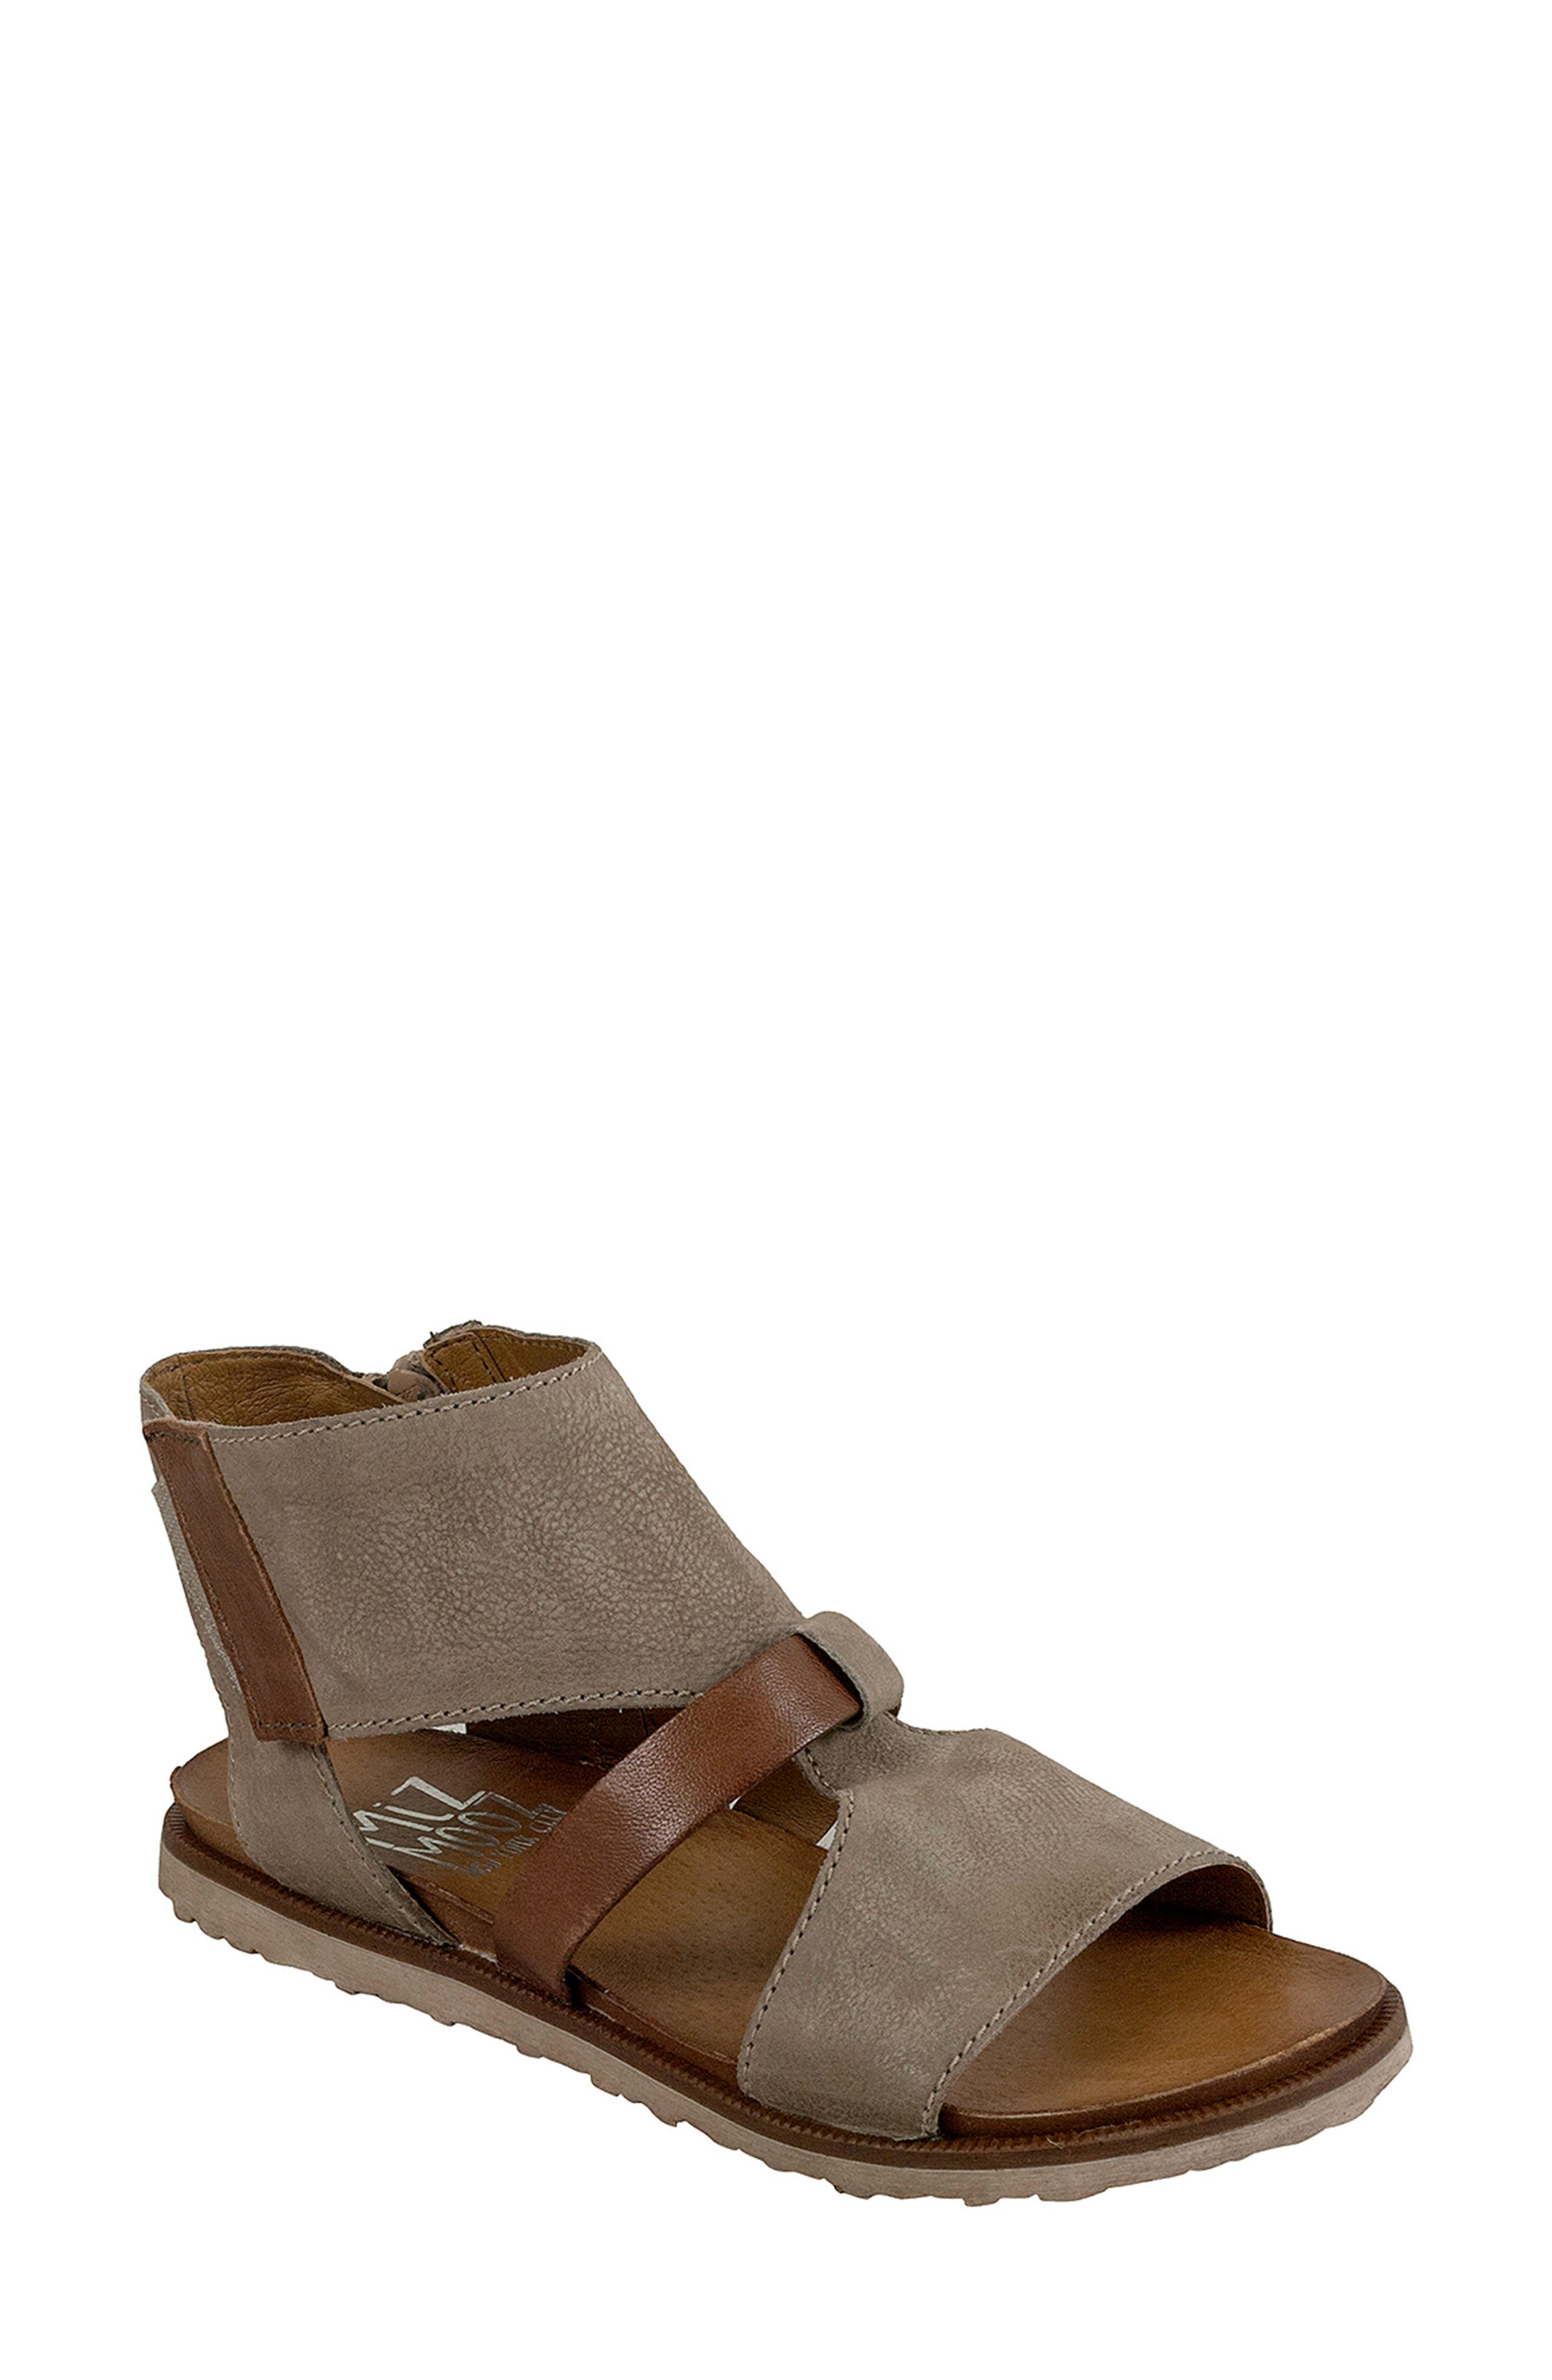 'Tamsyn' Sandal,                         Main,                         color, PEBBLE LEATHER